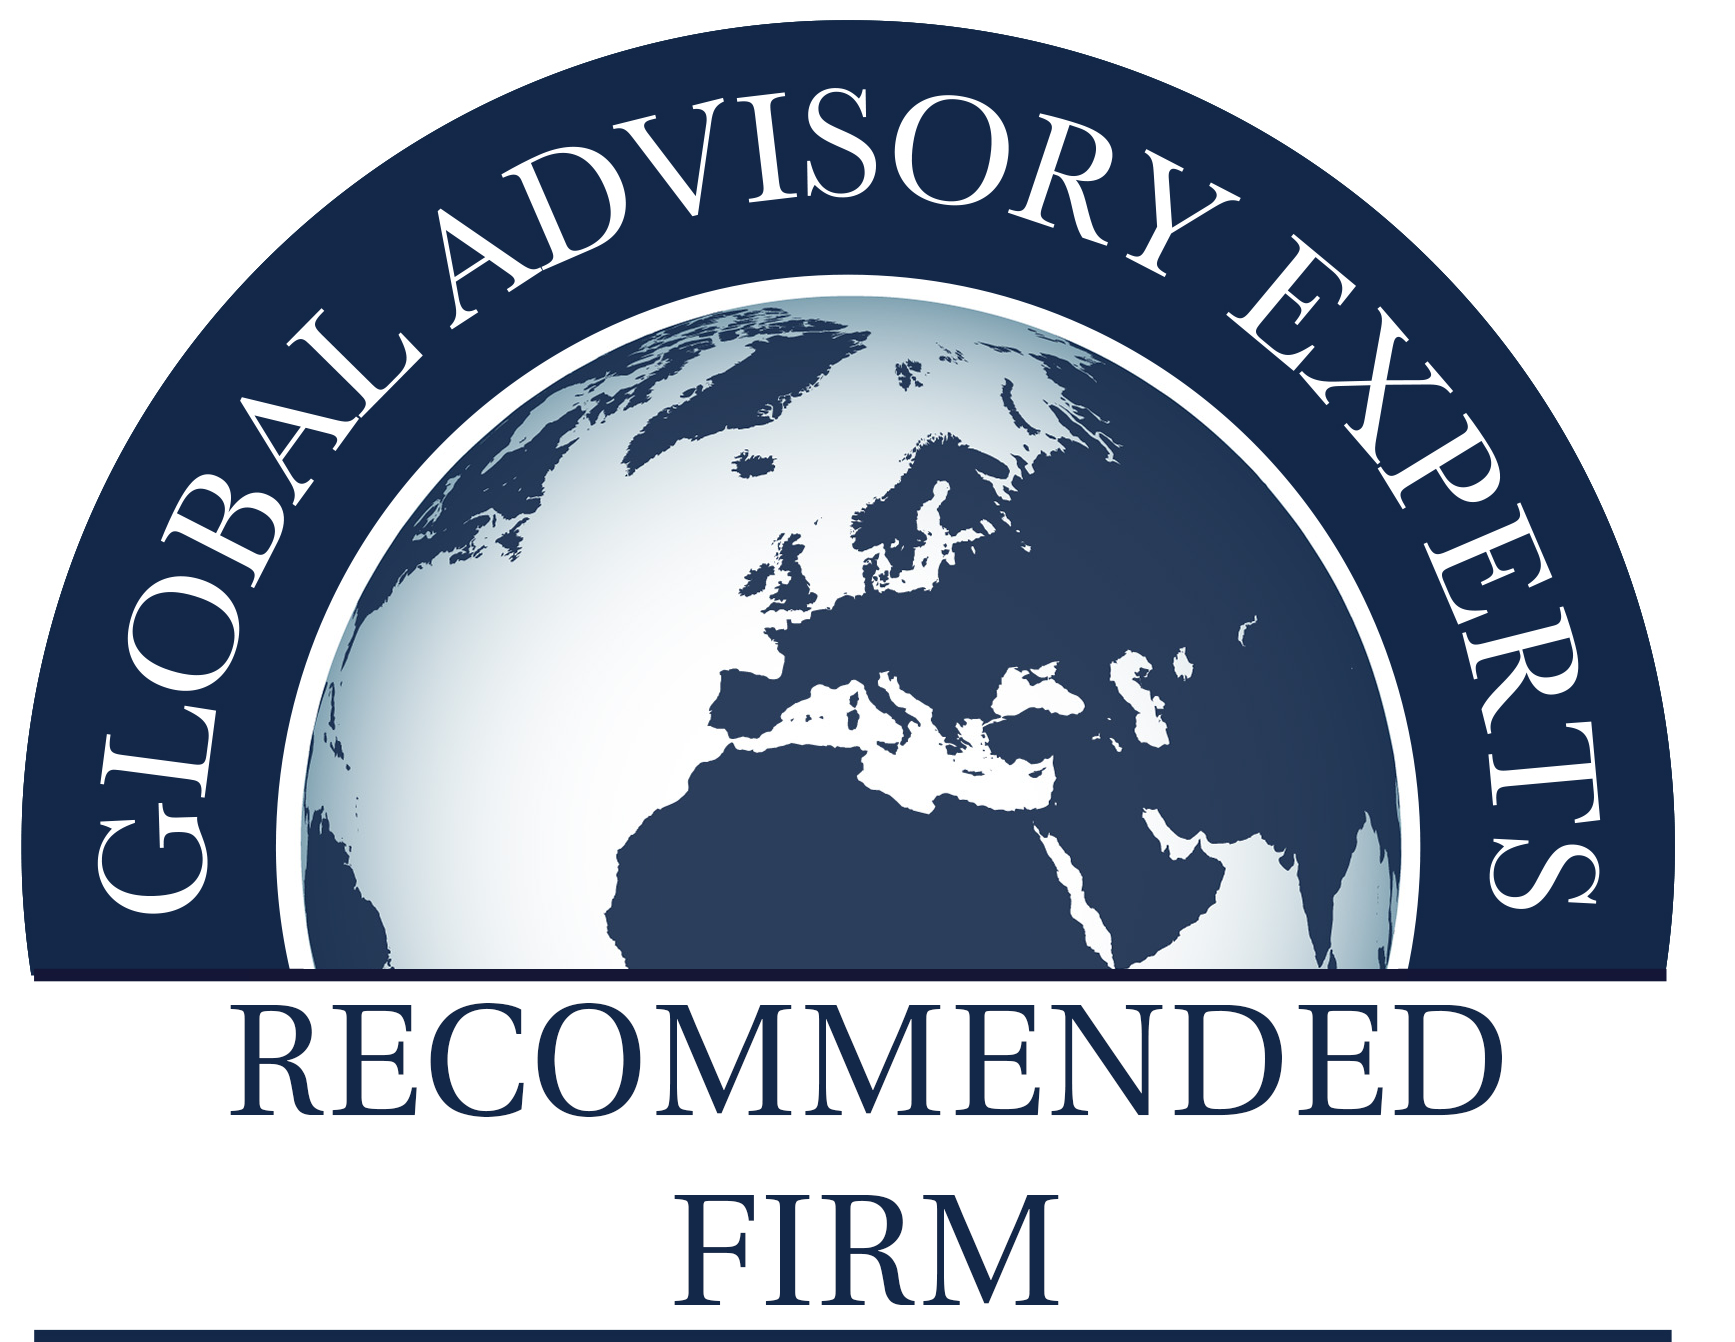 GLOBAL ADVISORY EXPERTS RECOMMENDED FIRM